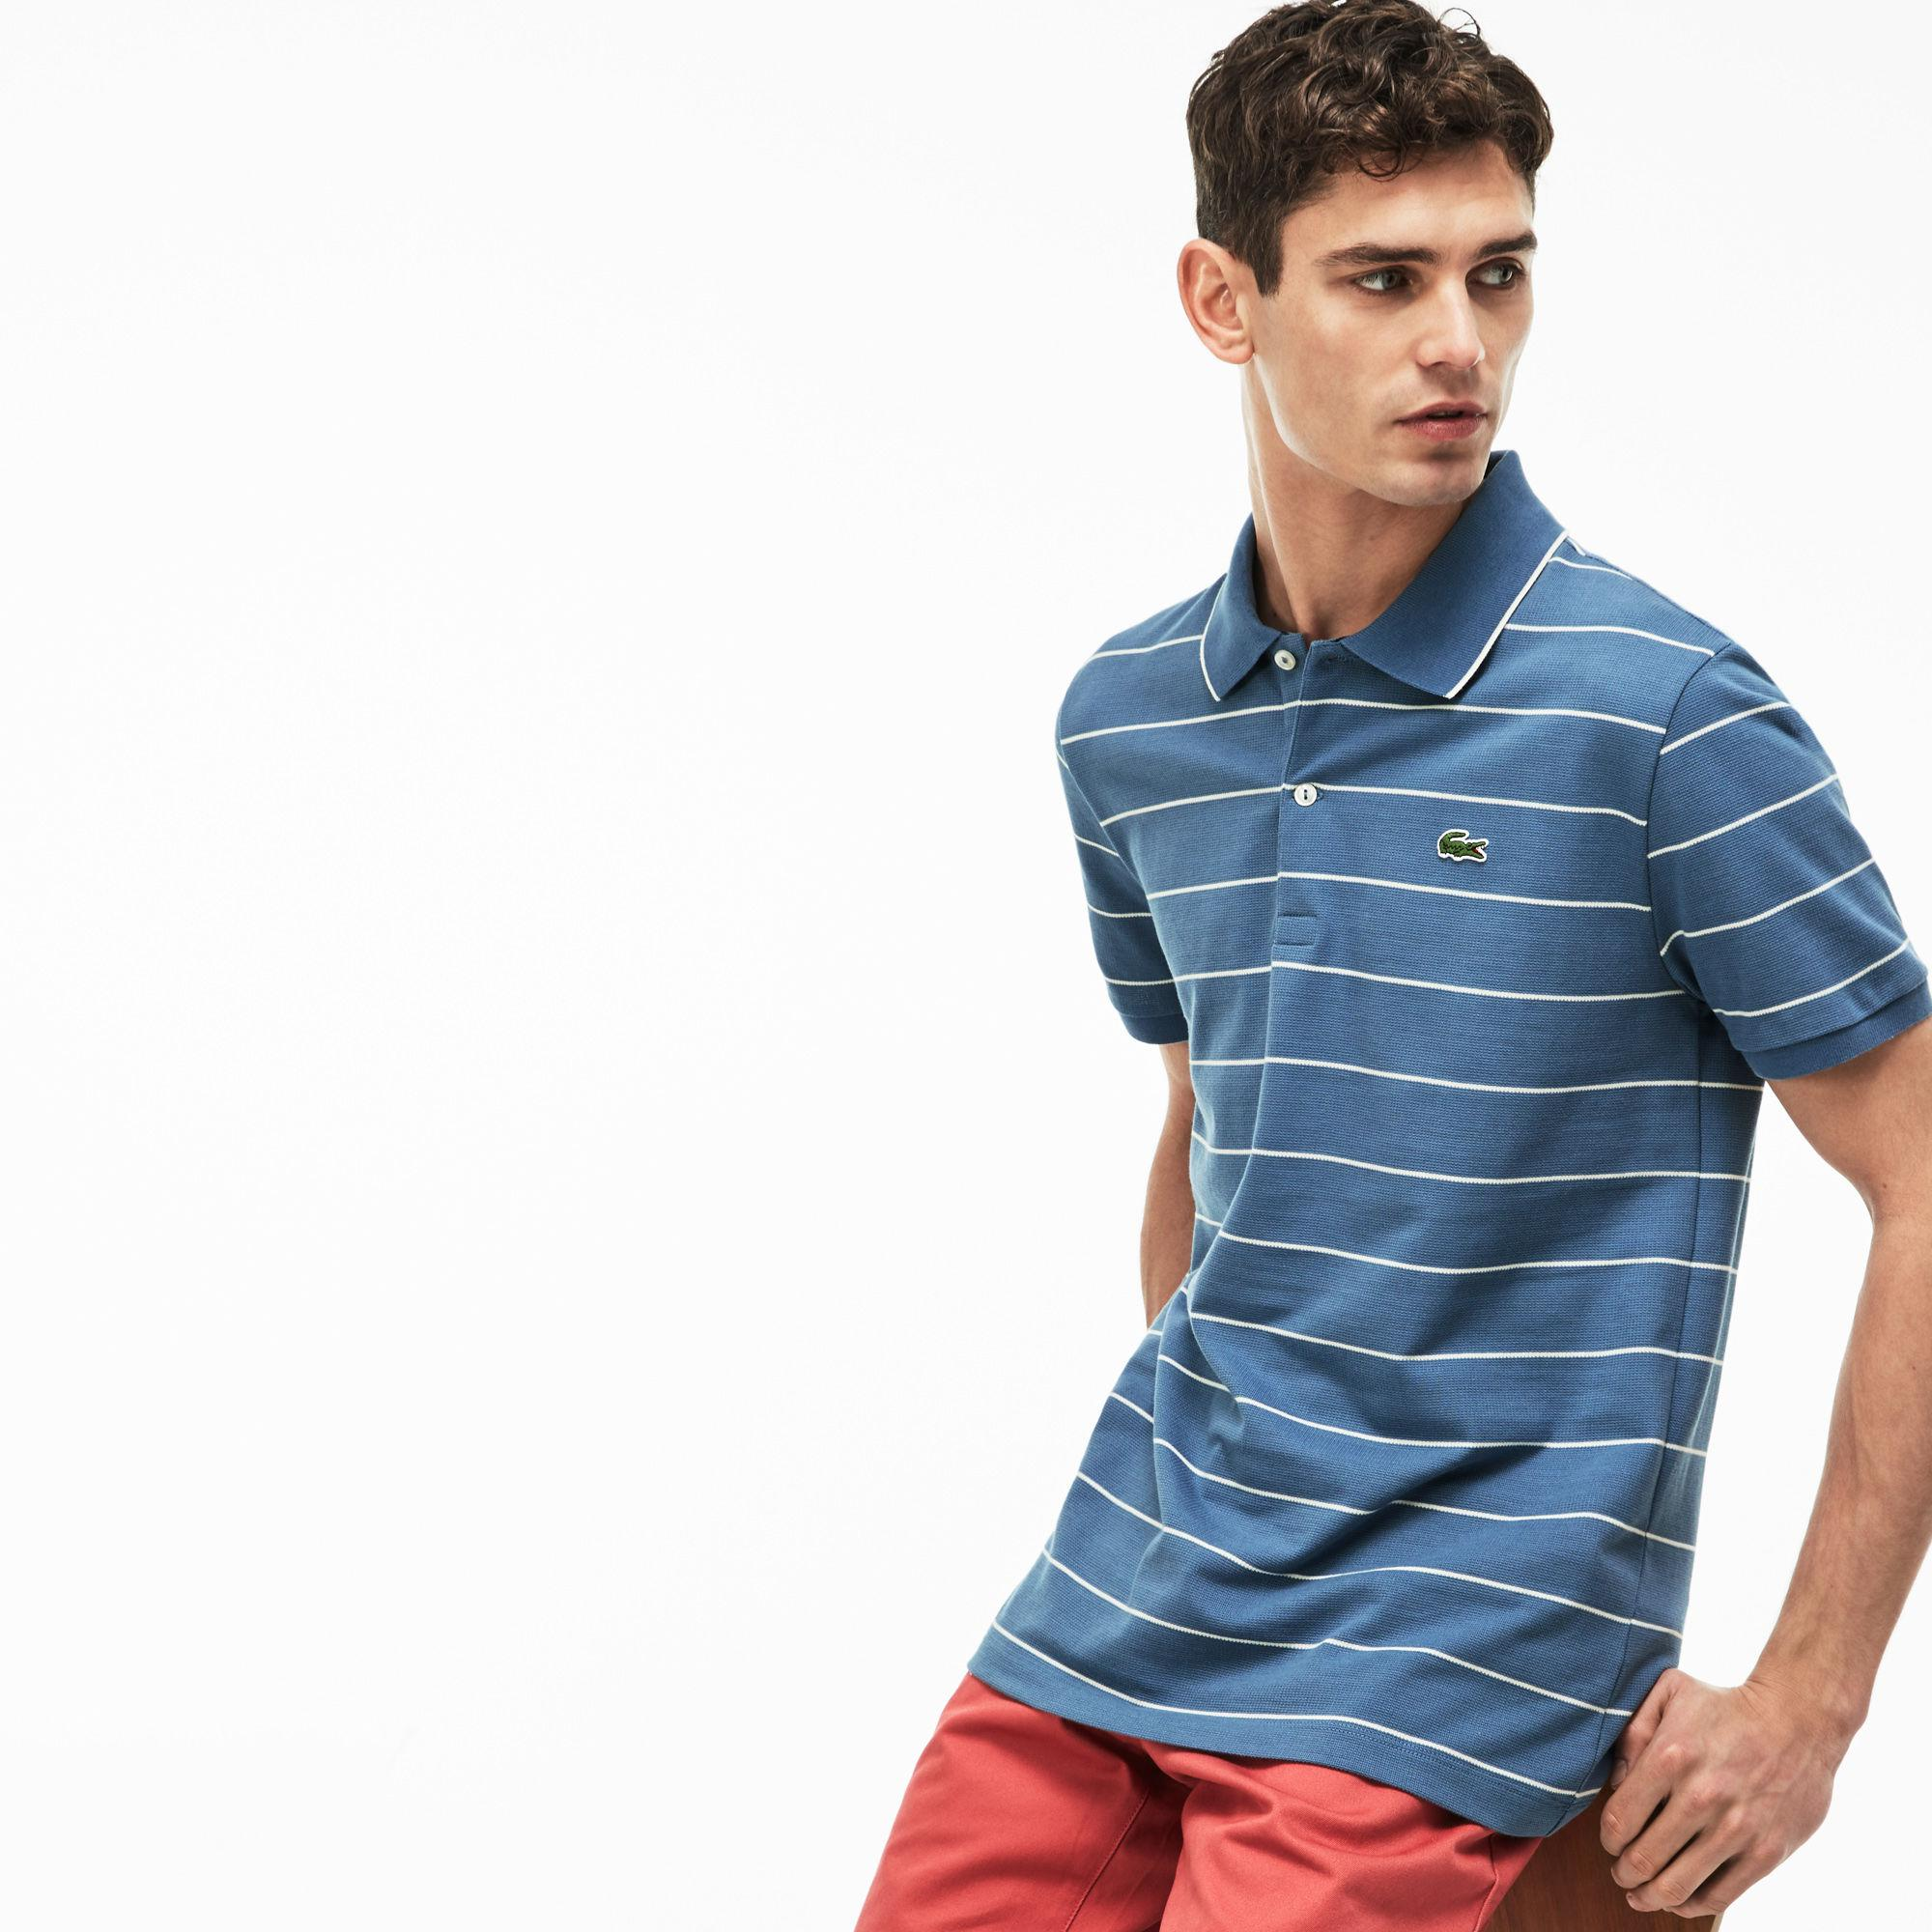 964ce6034ca009 Lyst - Lacoste Slim Fit Piped Striped Knit Polo in Blue for Men